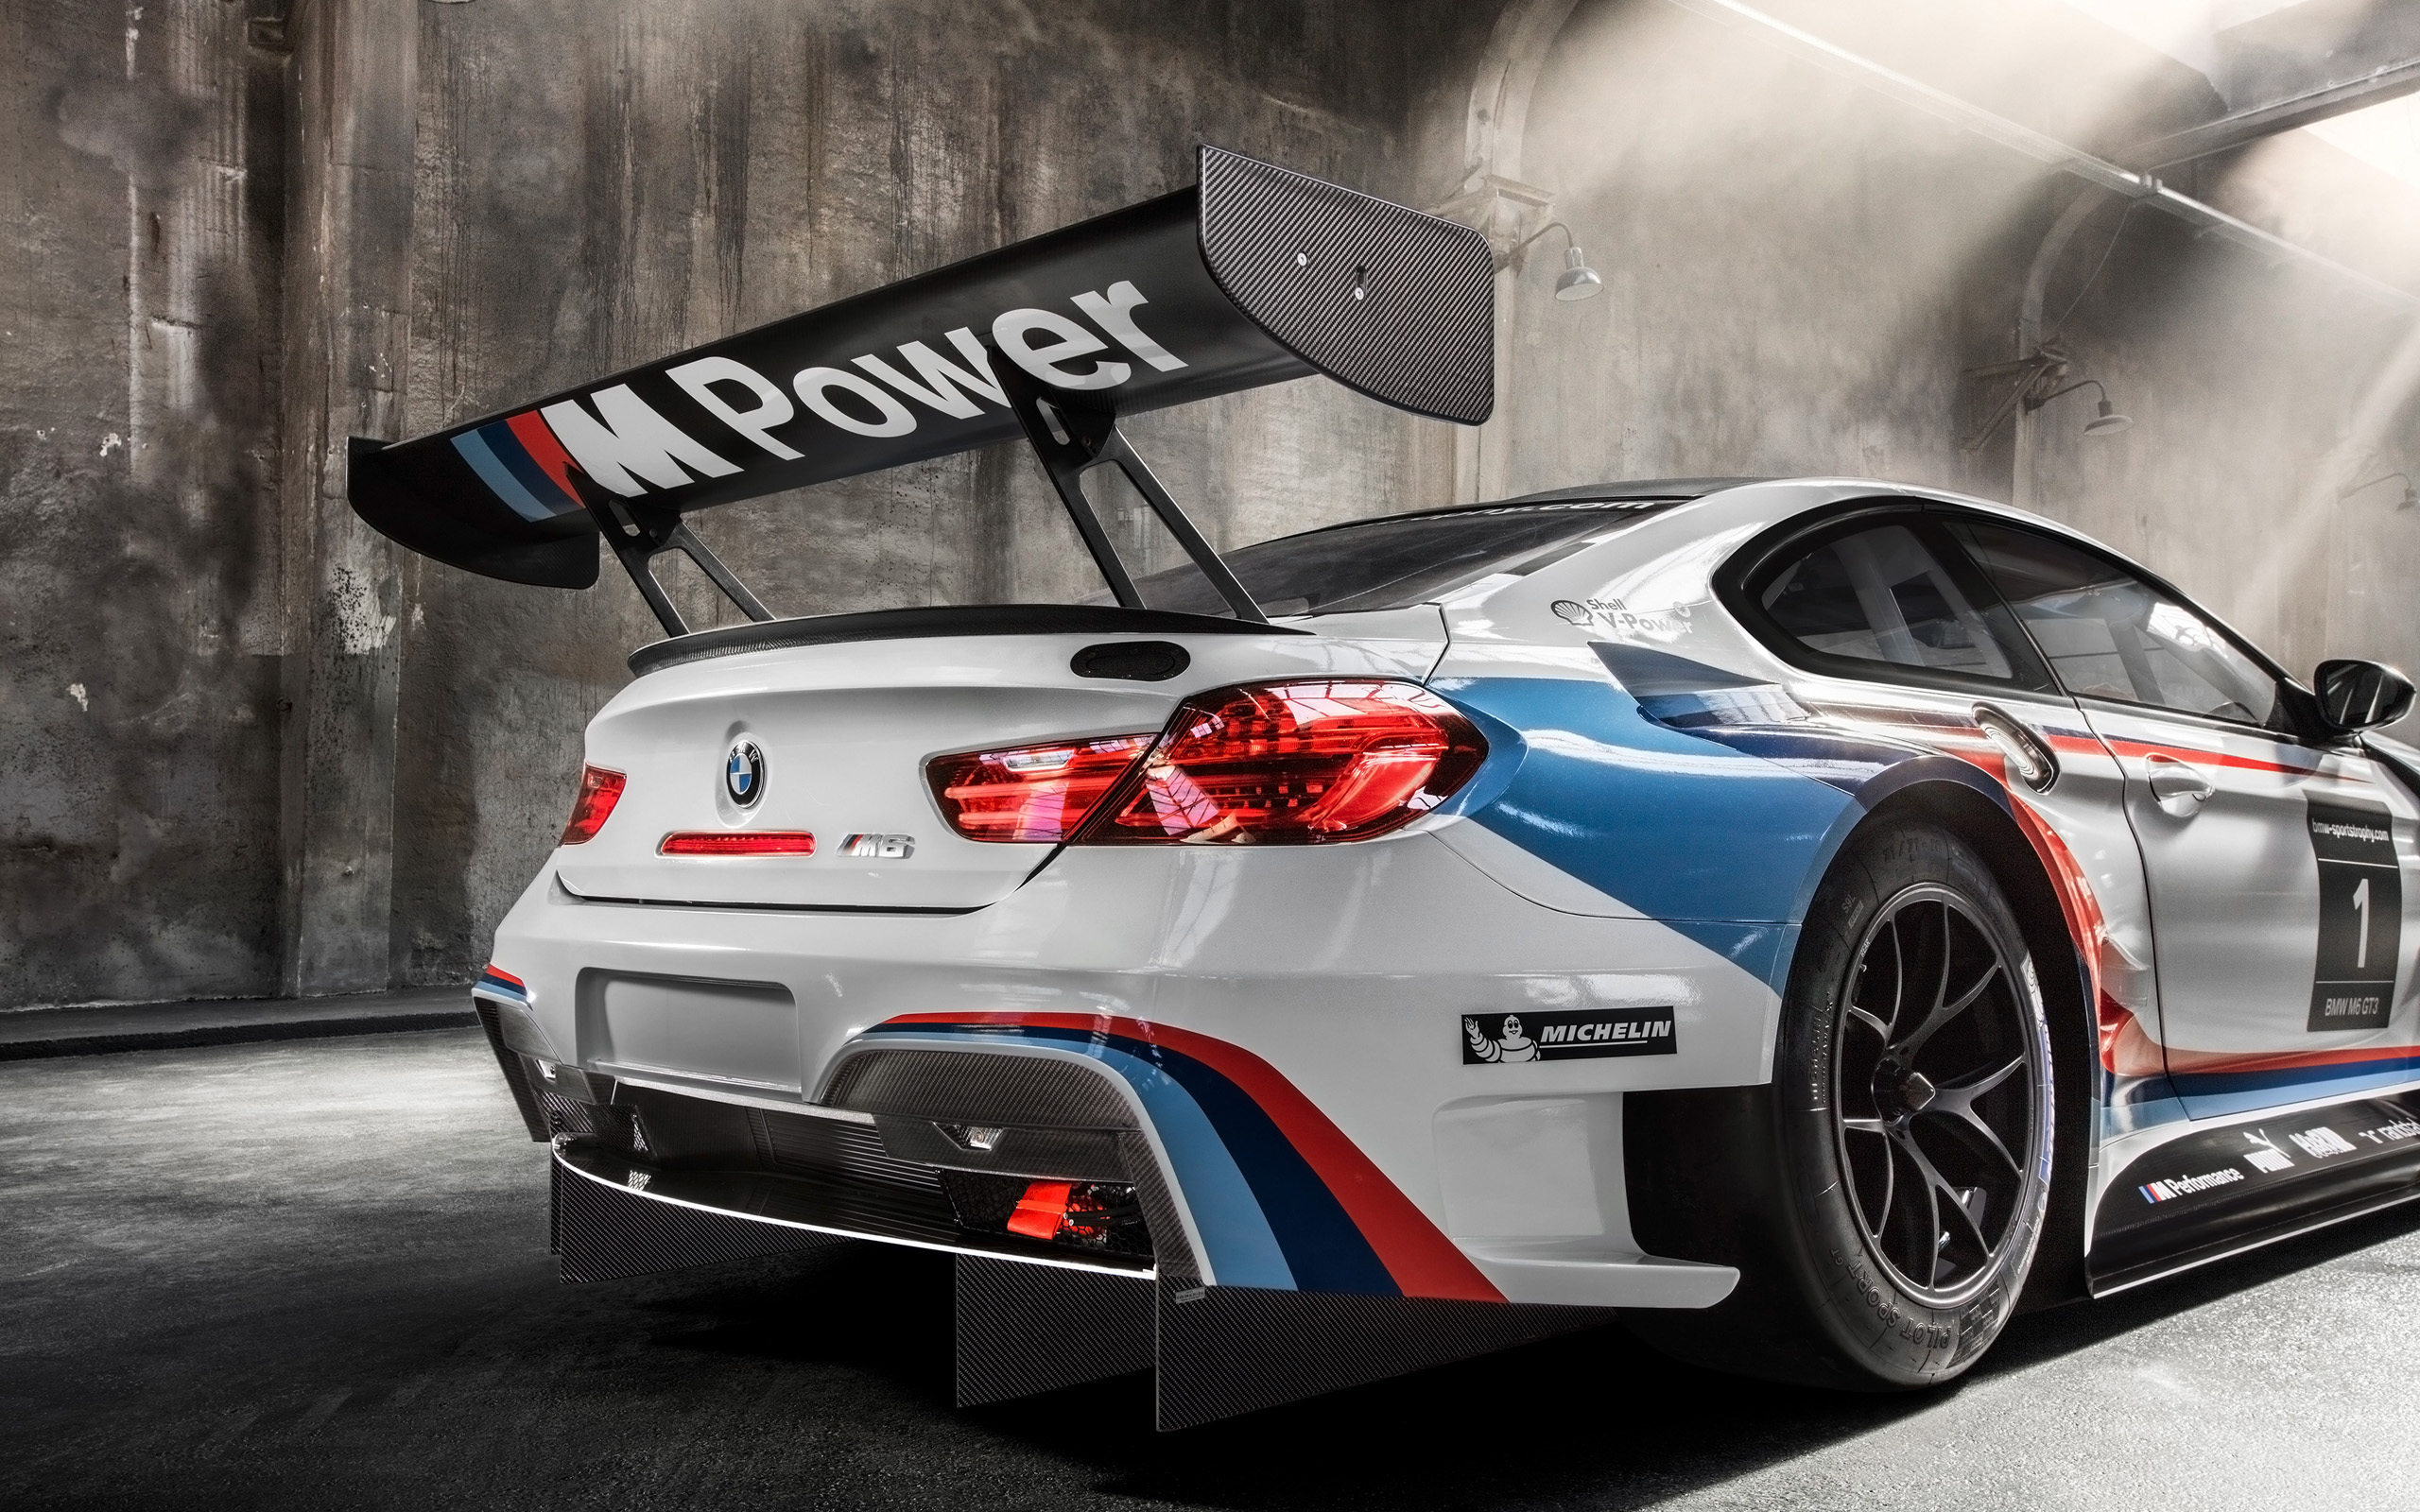 2016 bmw m6 gt3 wallpaper | hd car wallpapers | id #5893